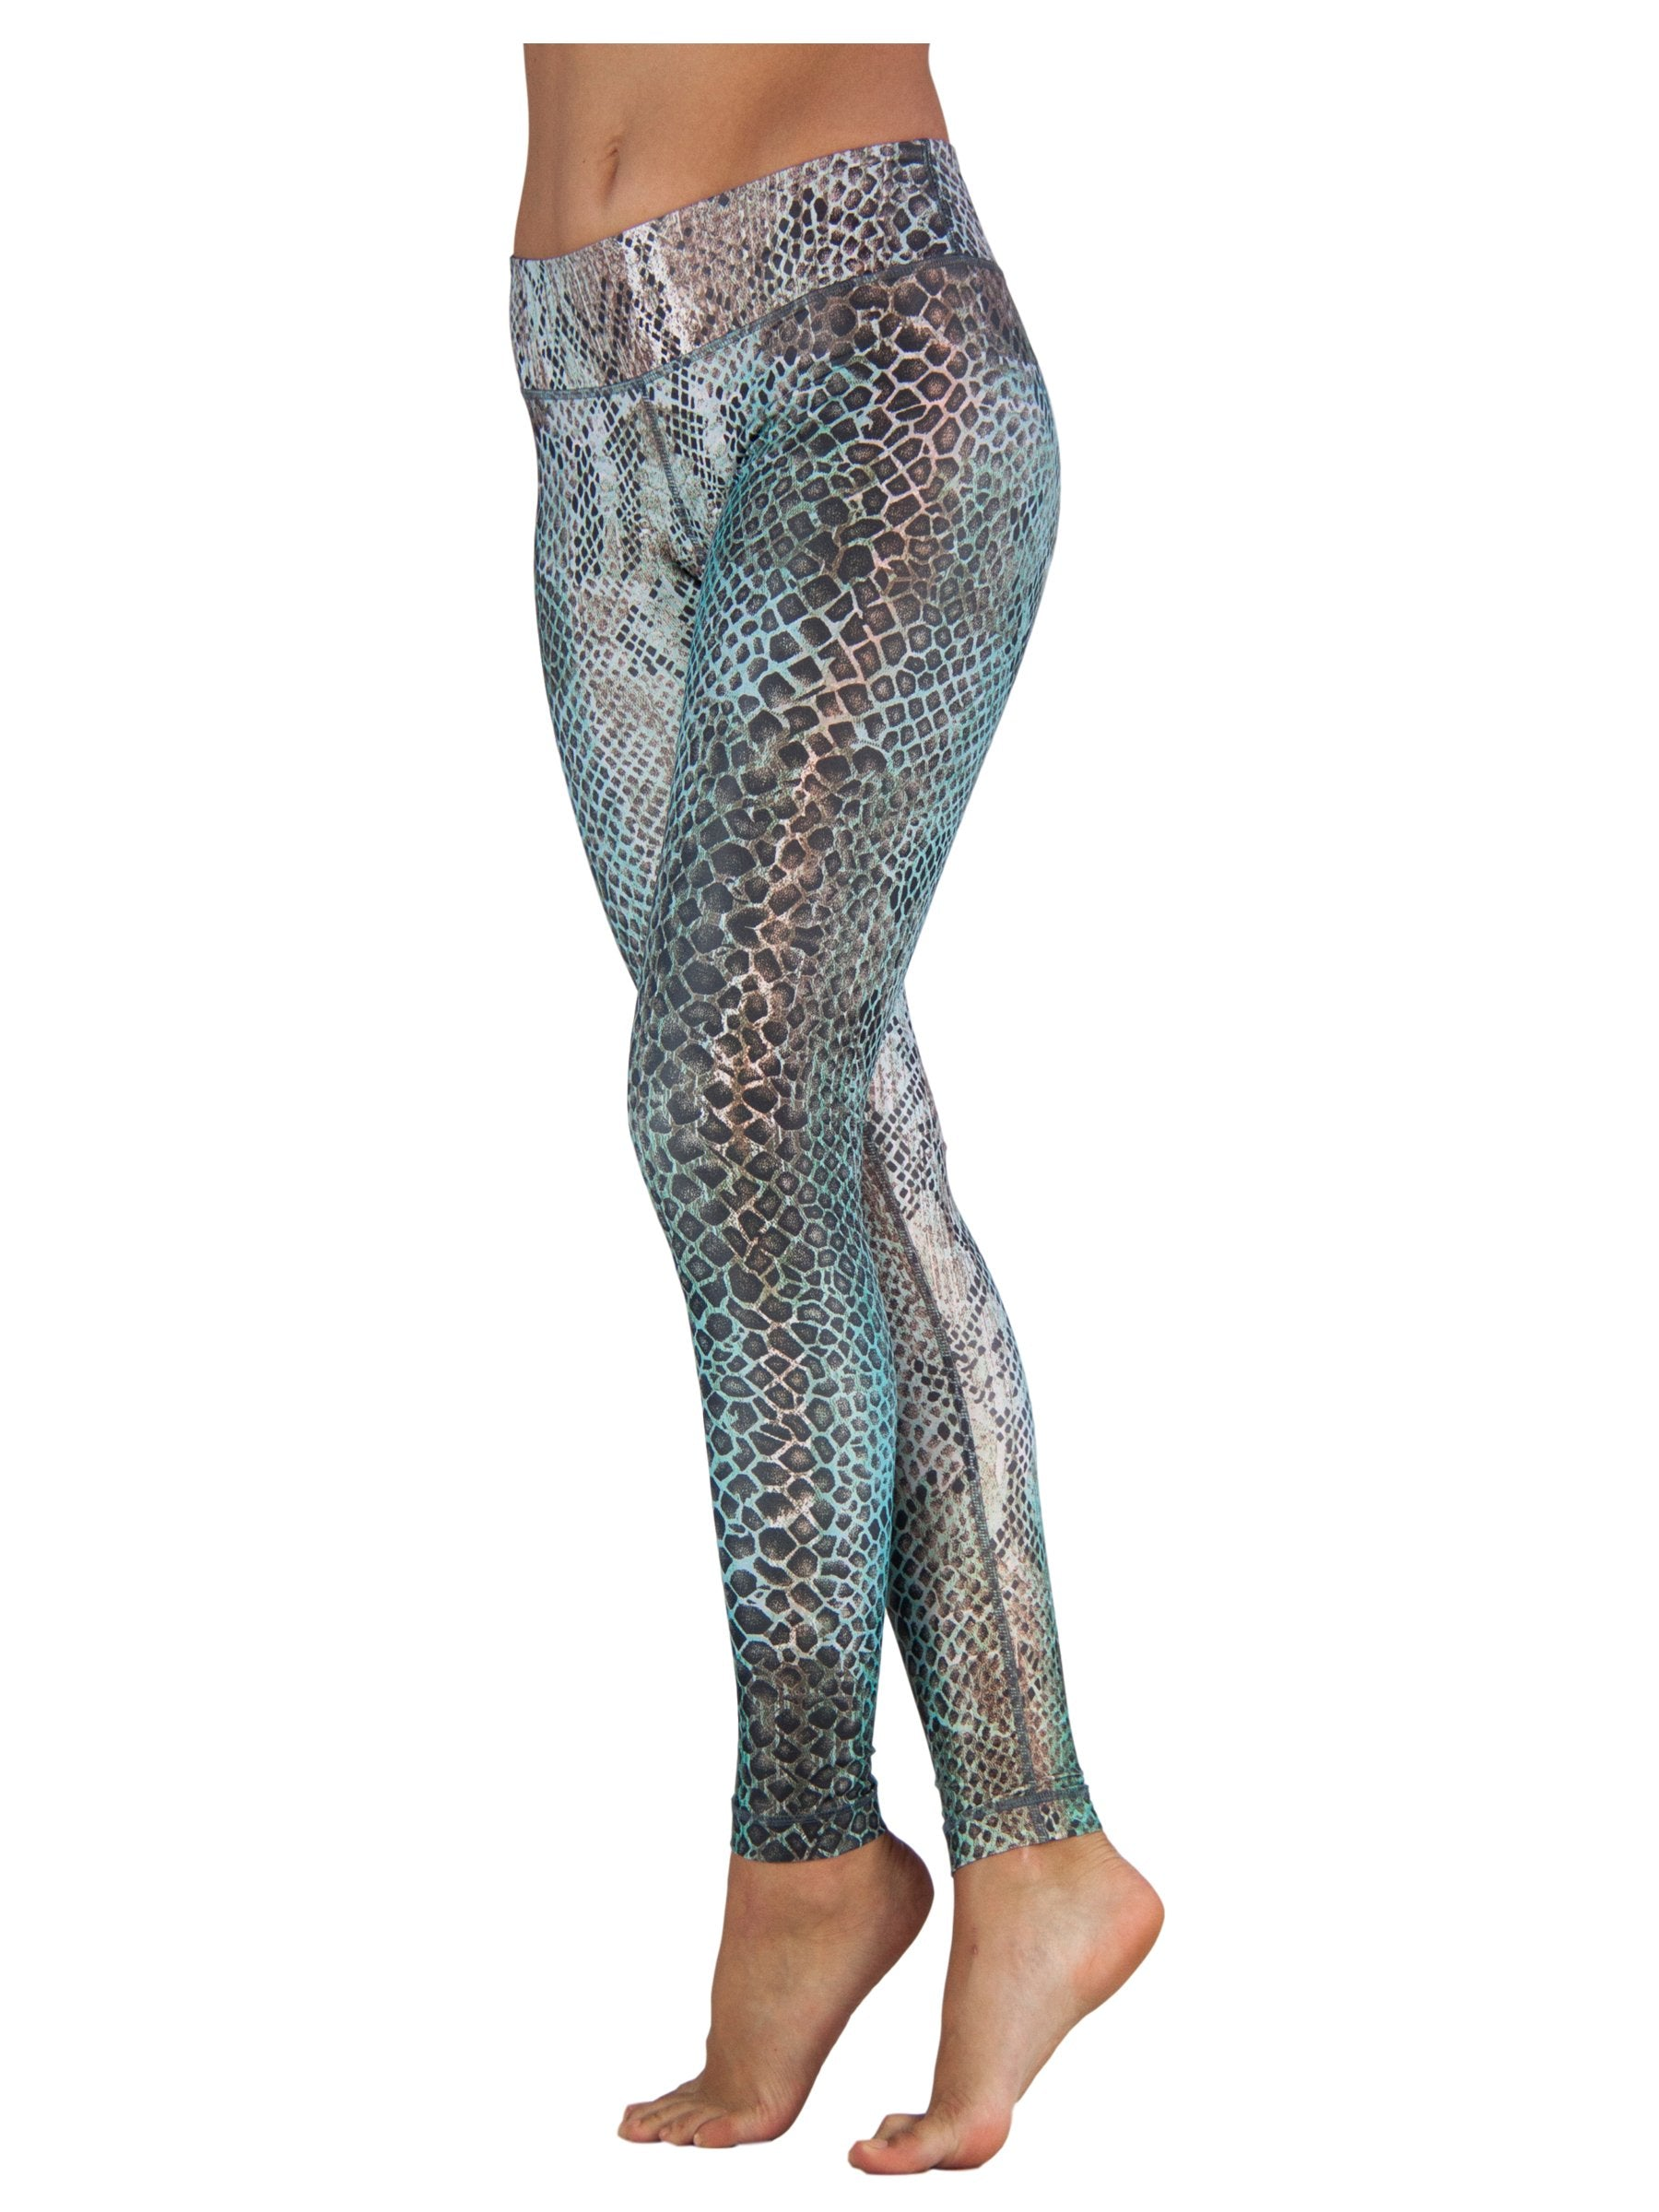 Wild at Heart by Niyama - High Quality, Yoga Legging for Movement Artists.